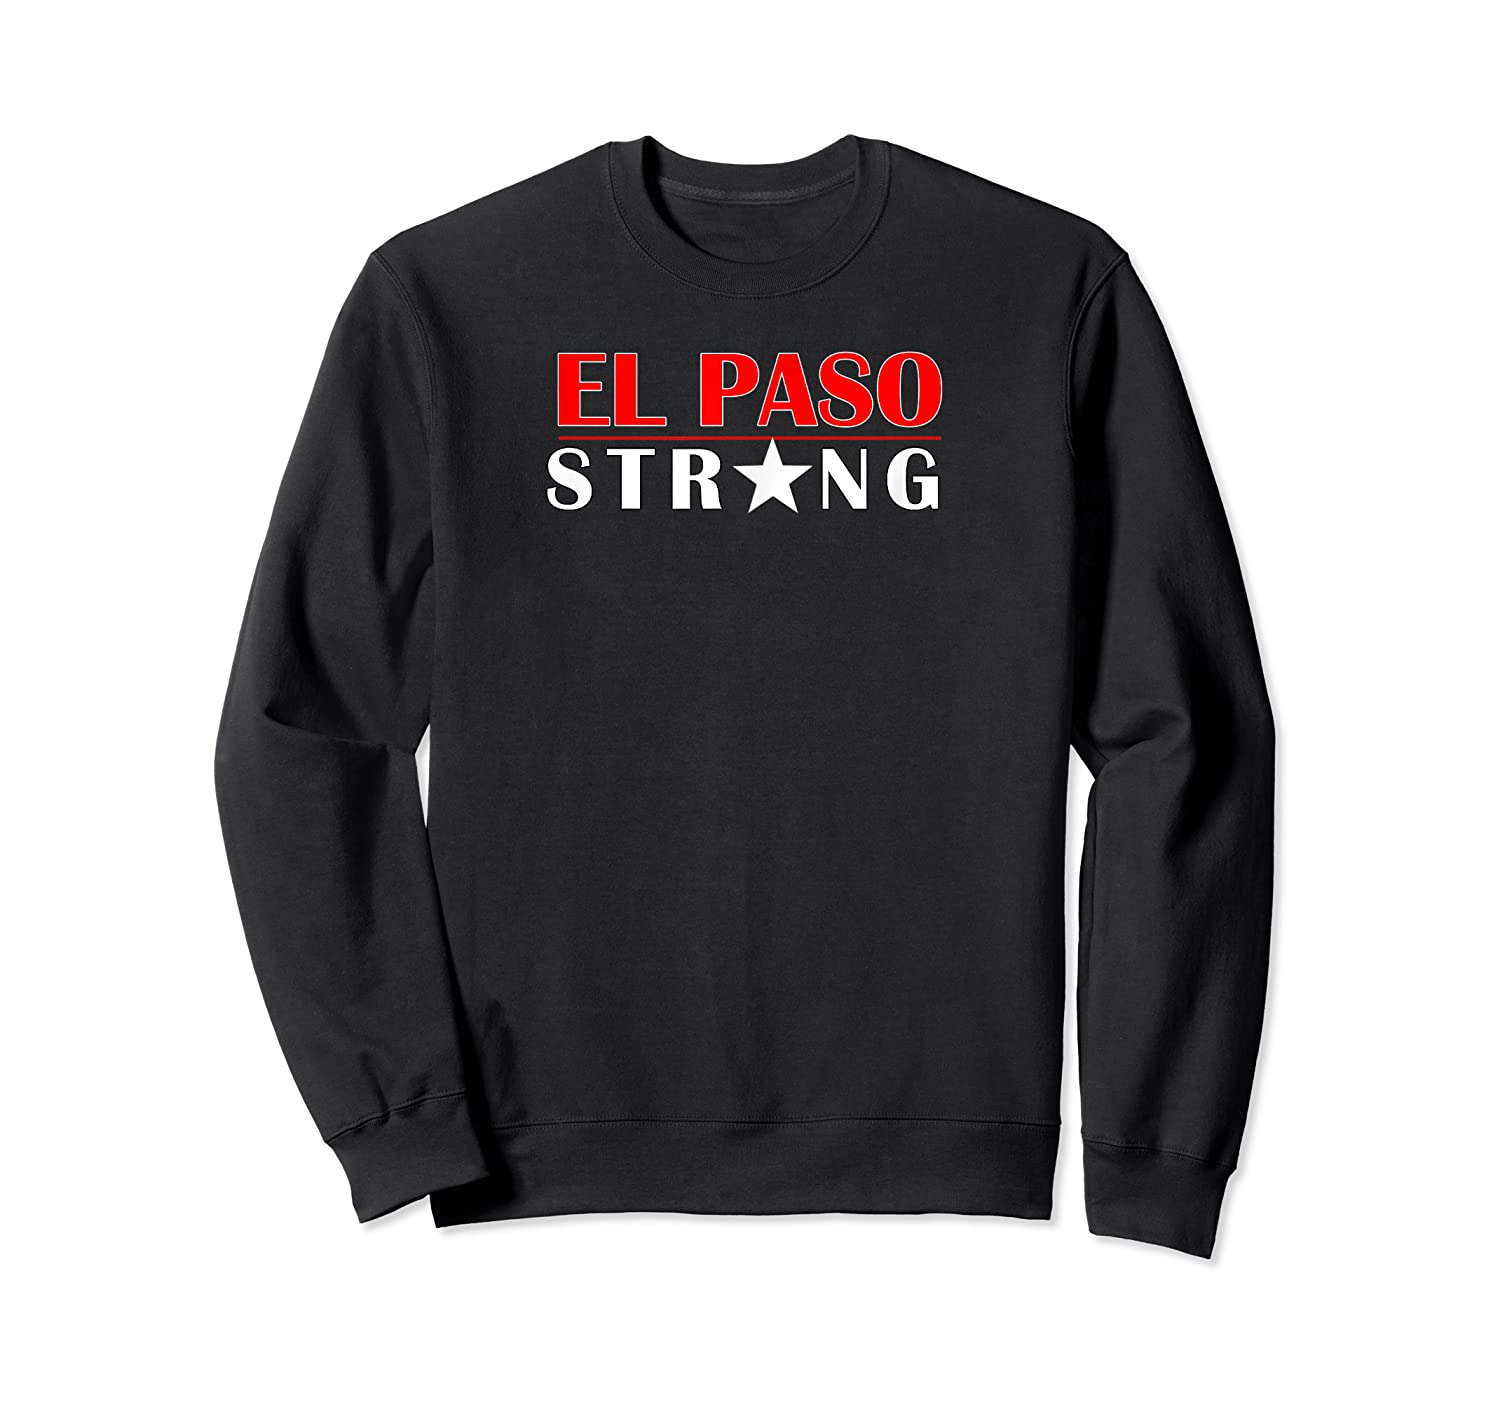 For Support And Shirts Crewneck Sweater